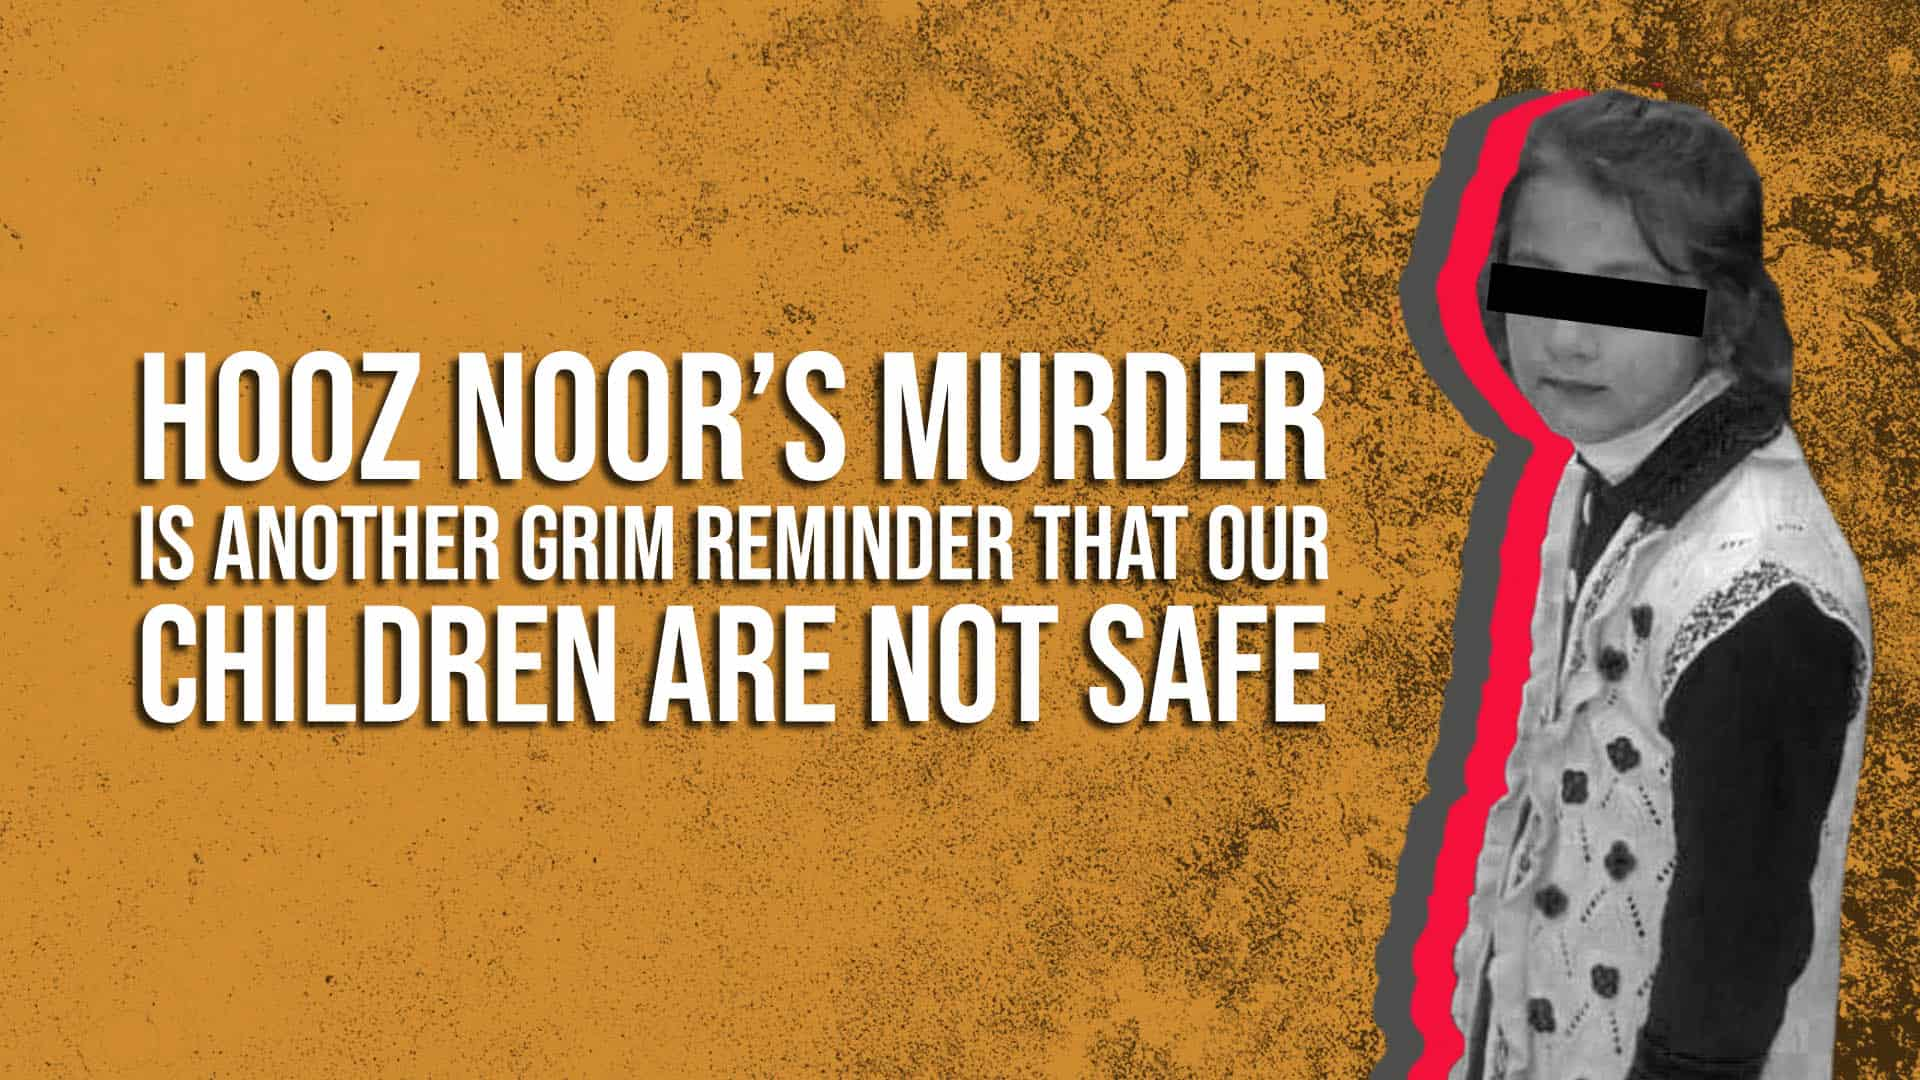 Hooz Noor's murder is another grim reminder that our children are not safe